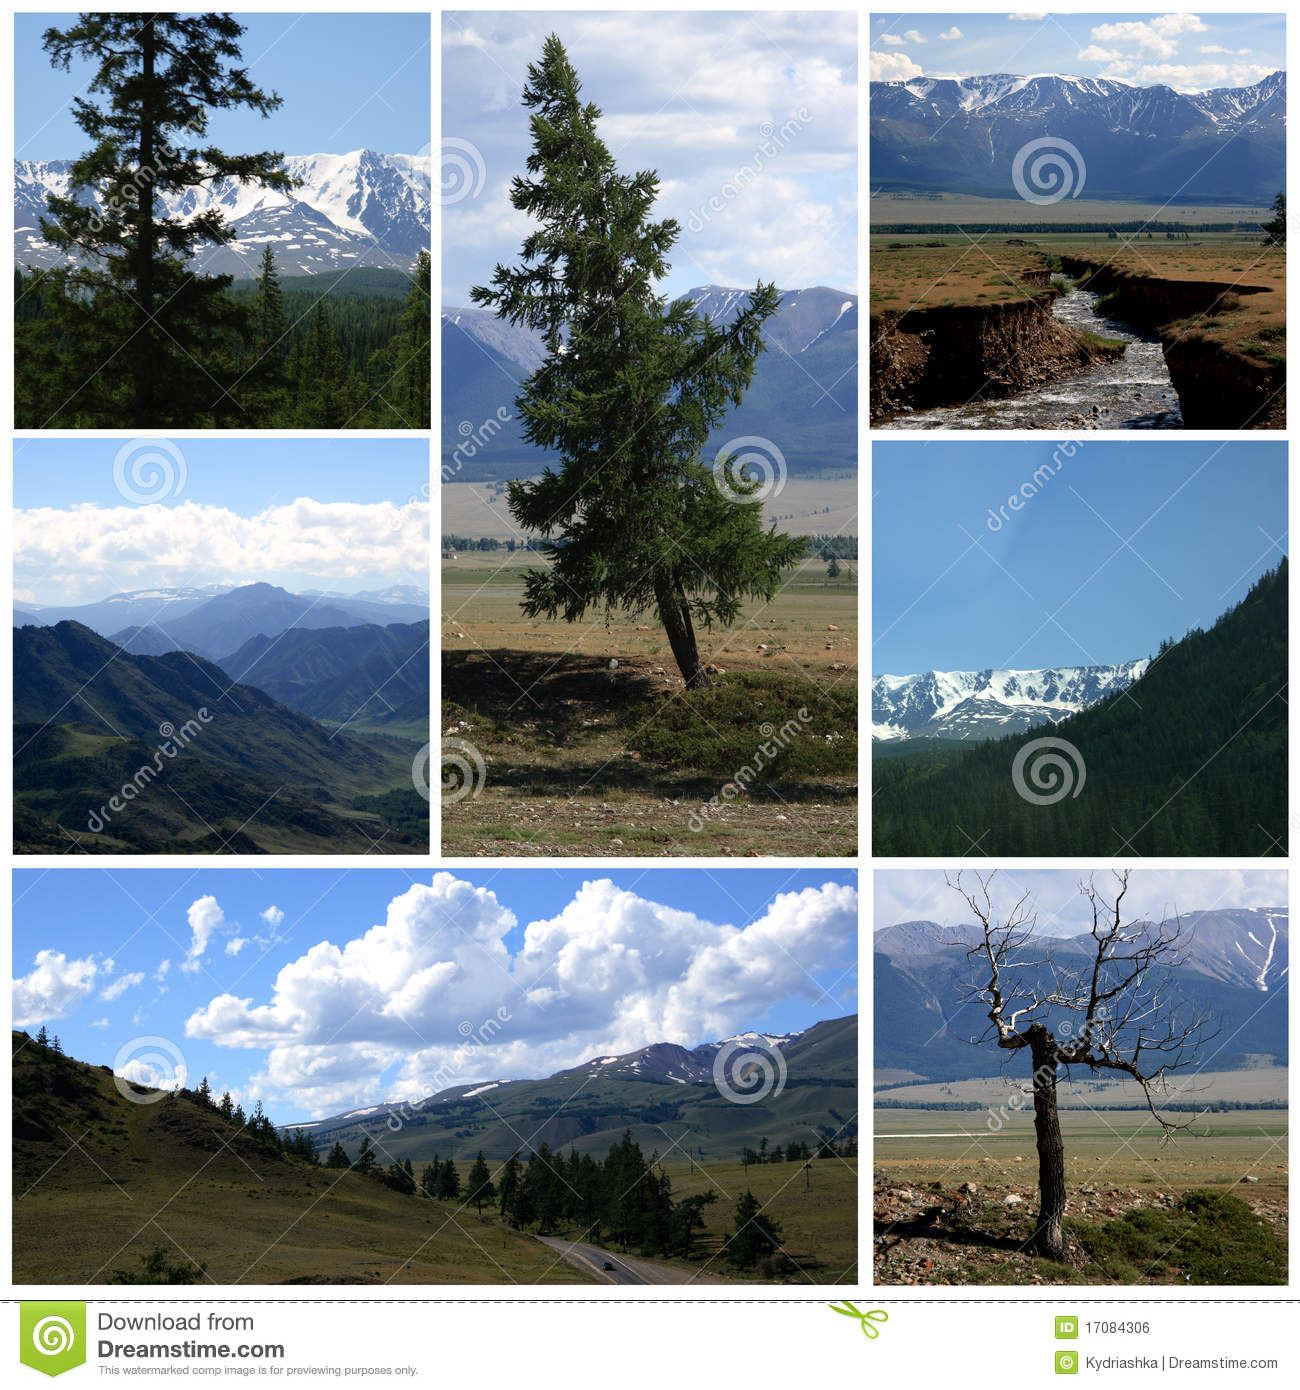 Nature Landscape Collage Royalty Free Stock Image